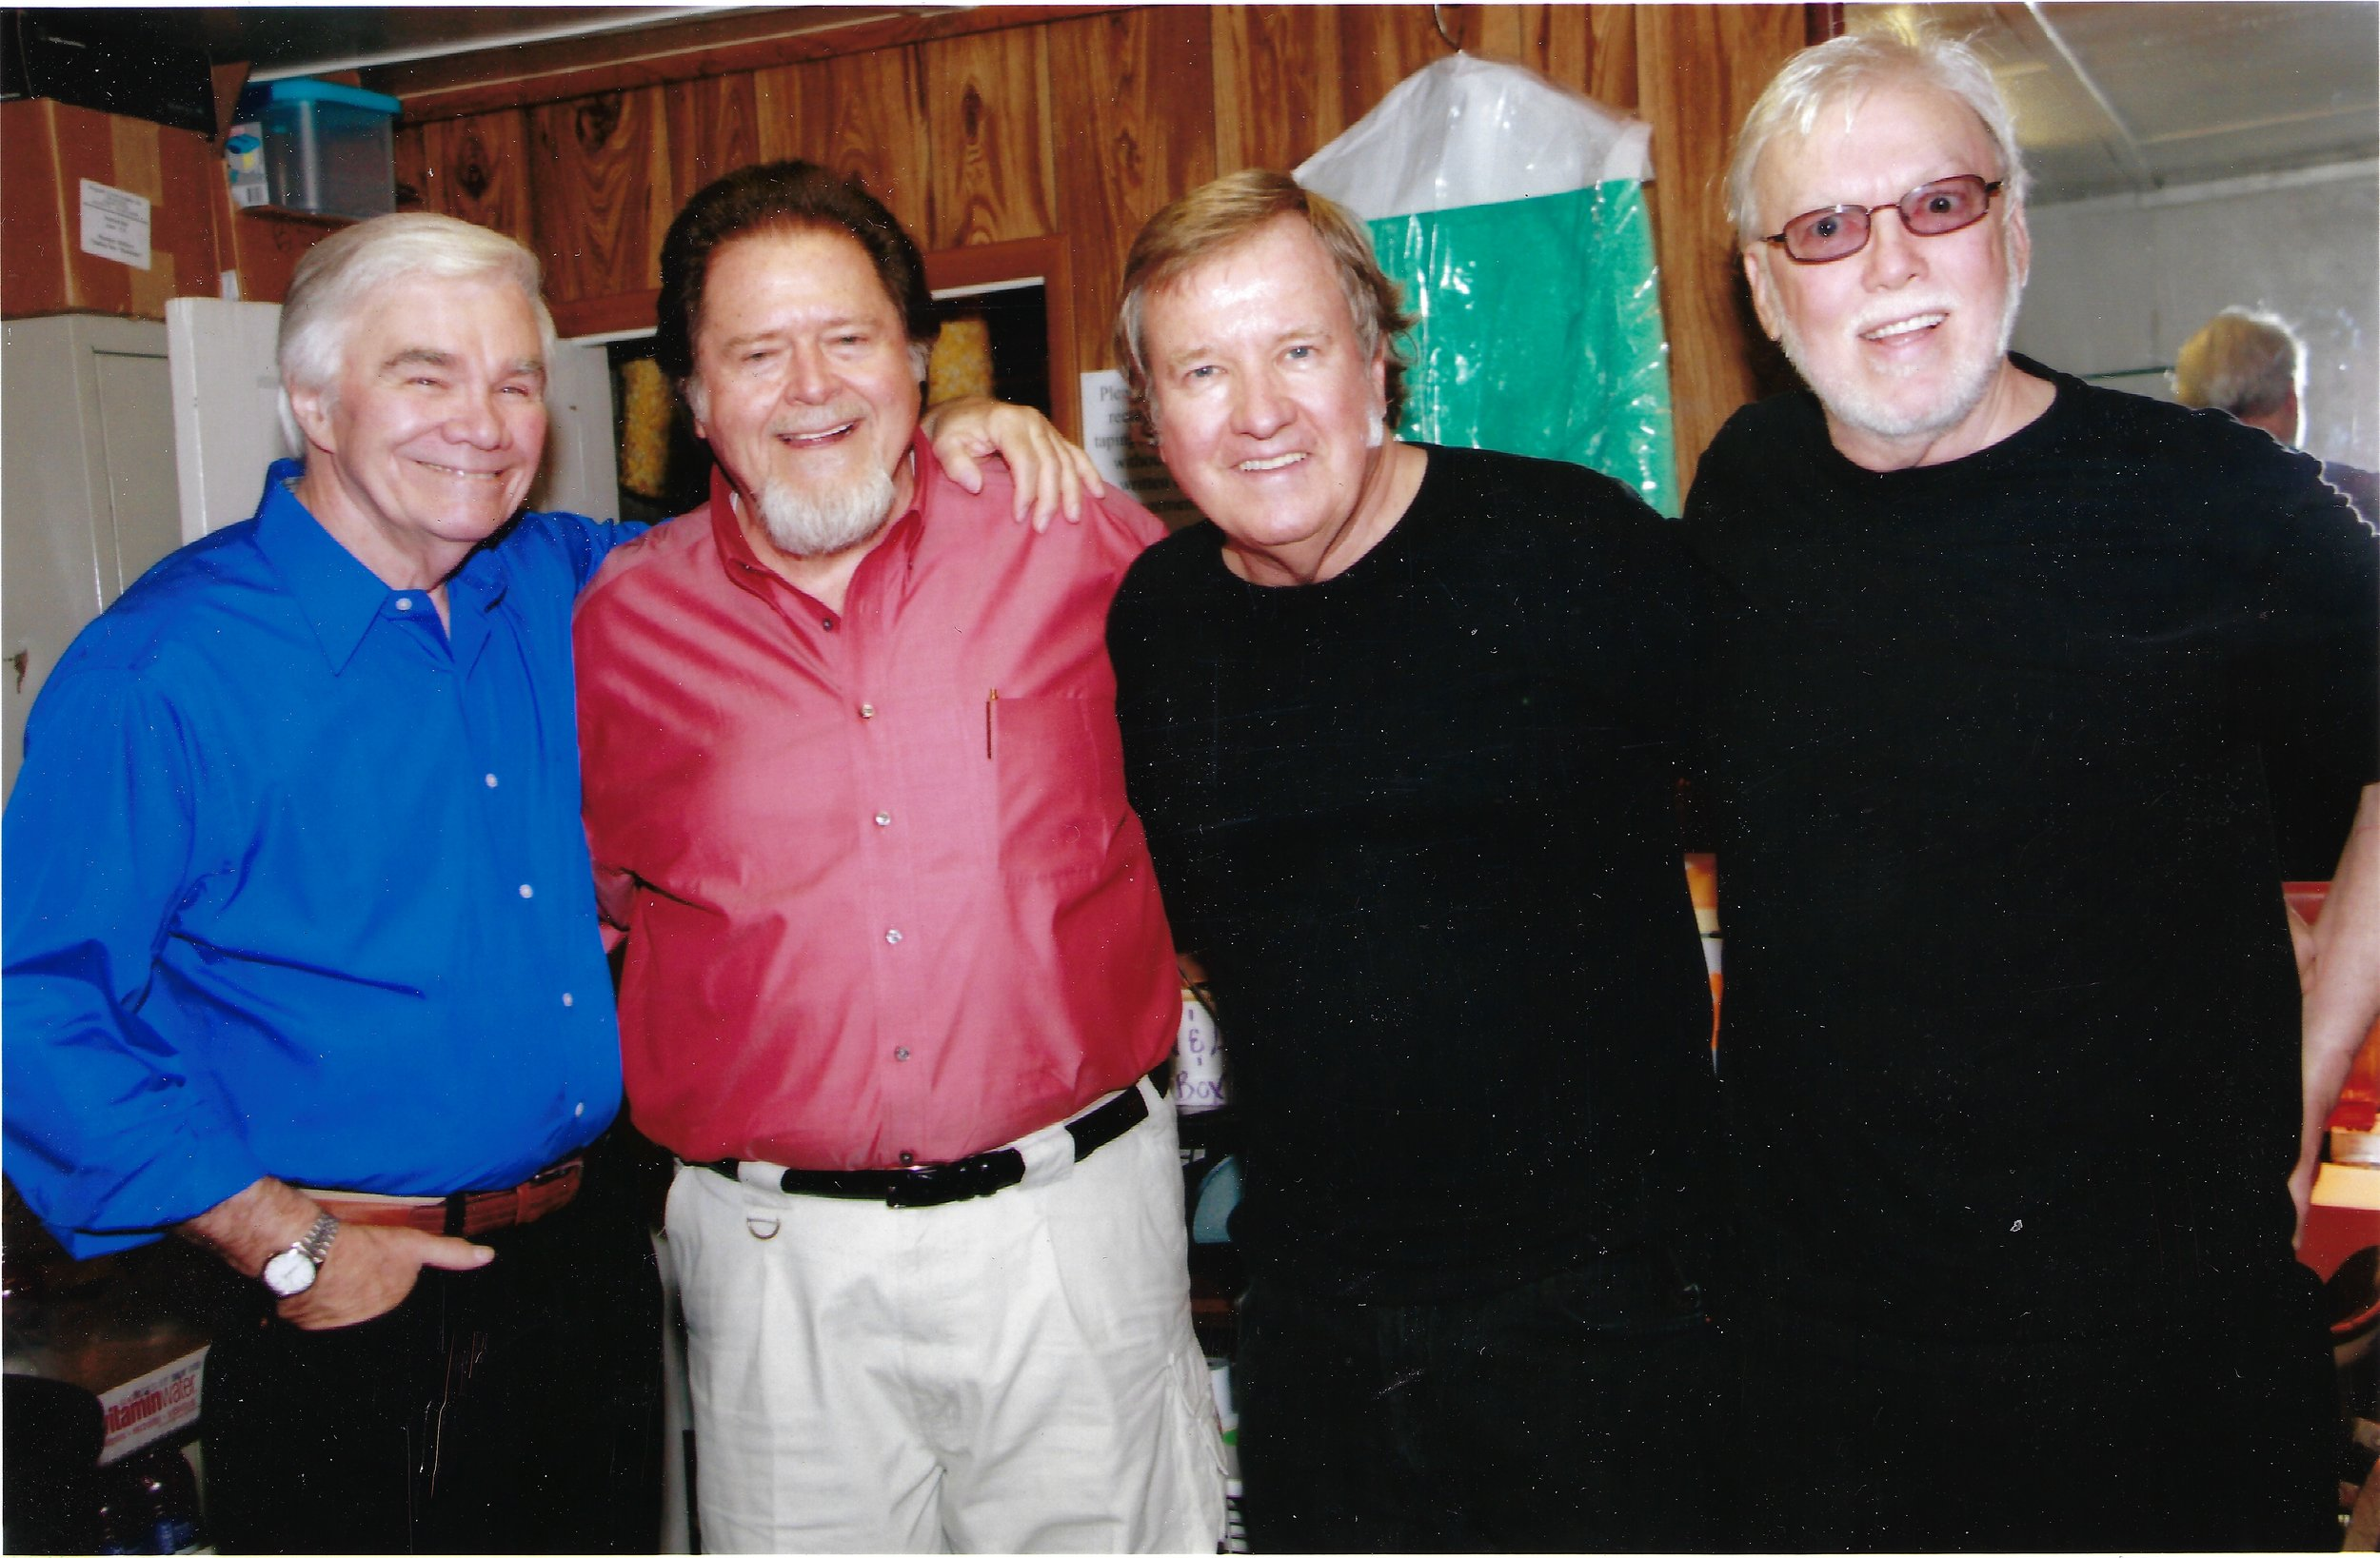 Dallas Frazier - Dickey Lee - Buzz Cason - Billy Swan.jpeg